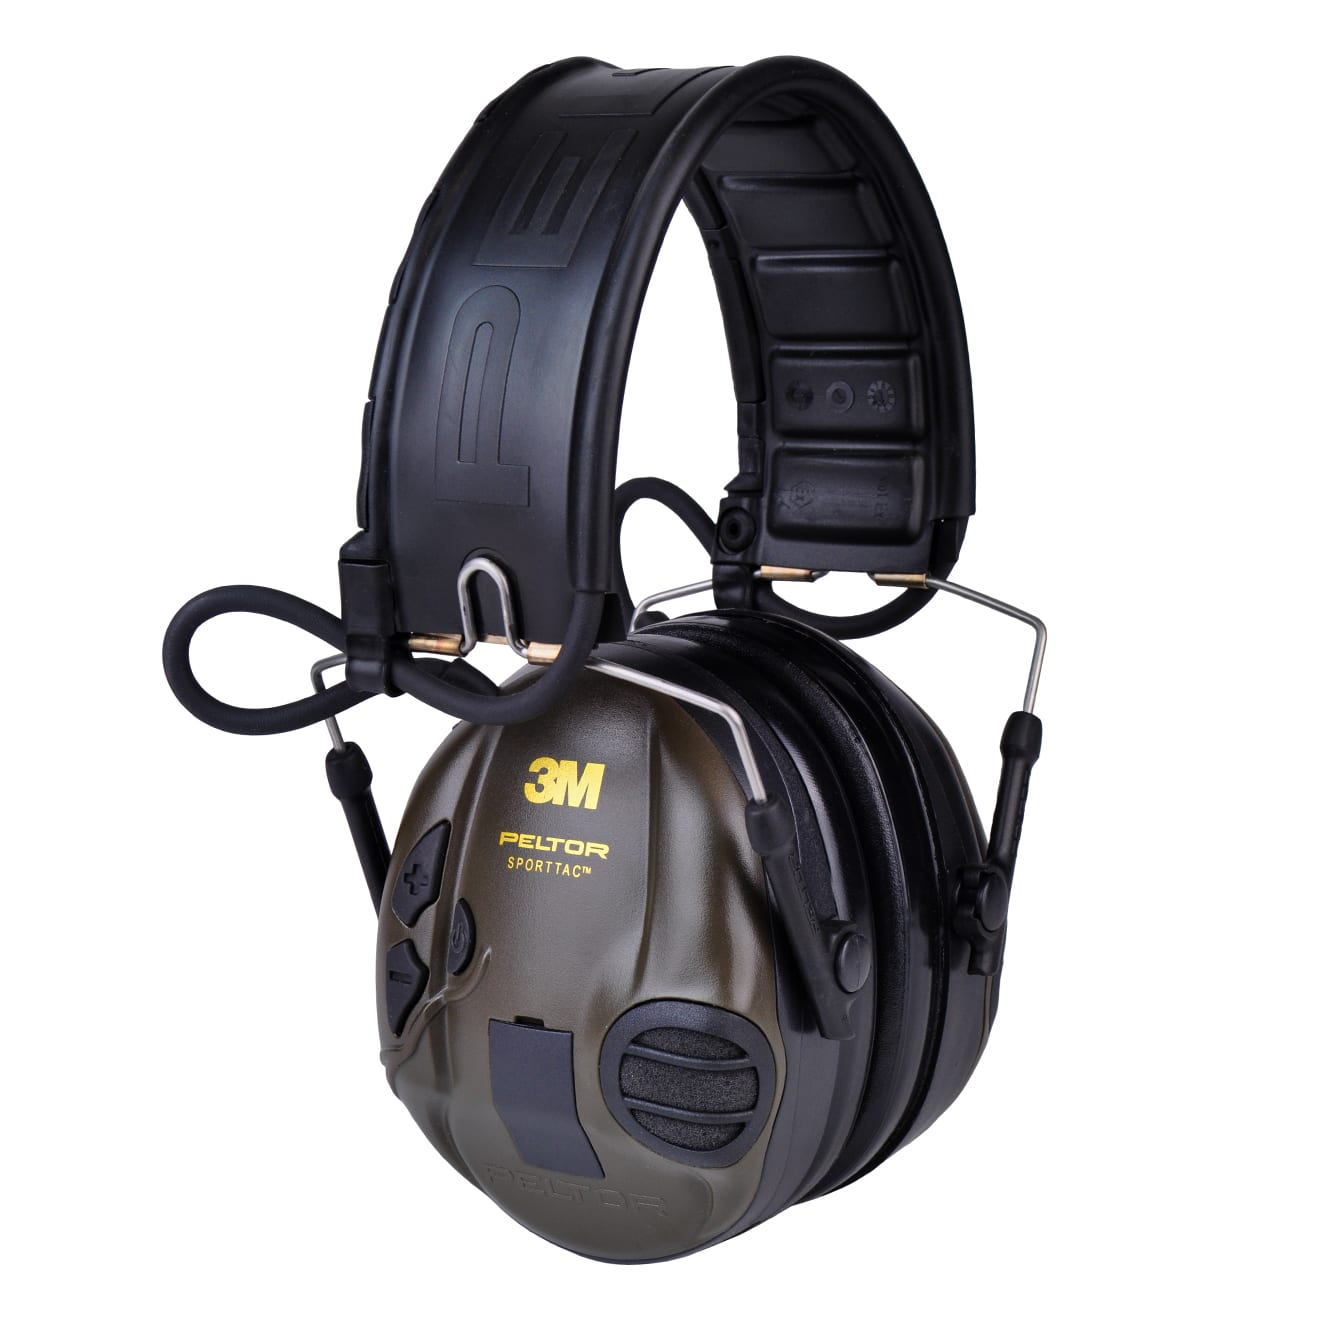 peltor sporttac electronic earmuff the sporting lodge. Black Bedroom Furniture Sets. Home Design Ideas